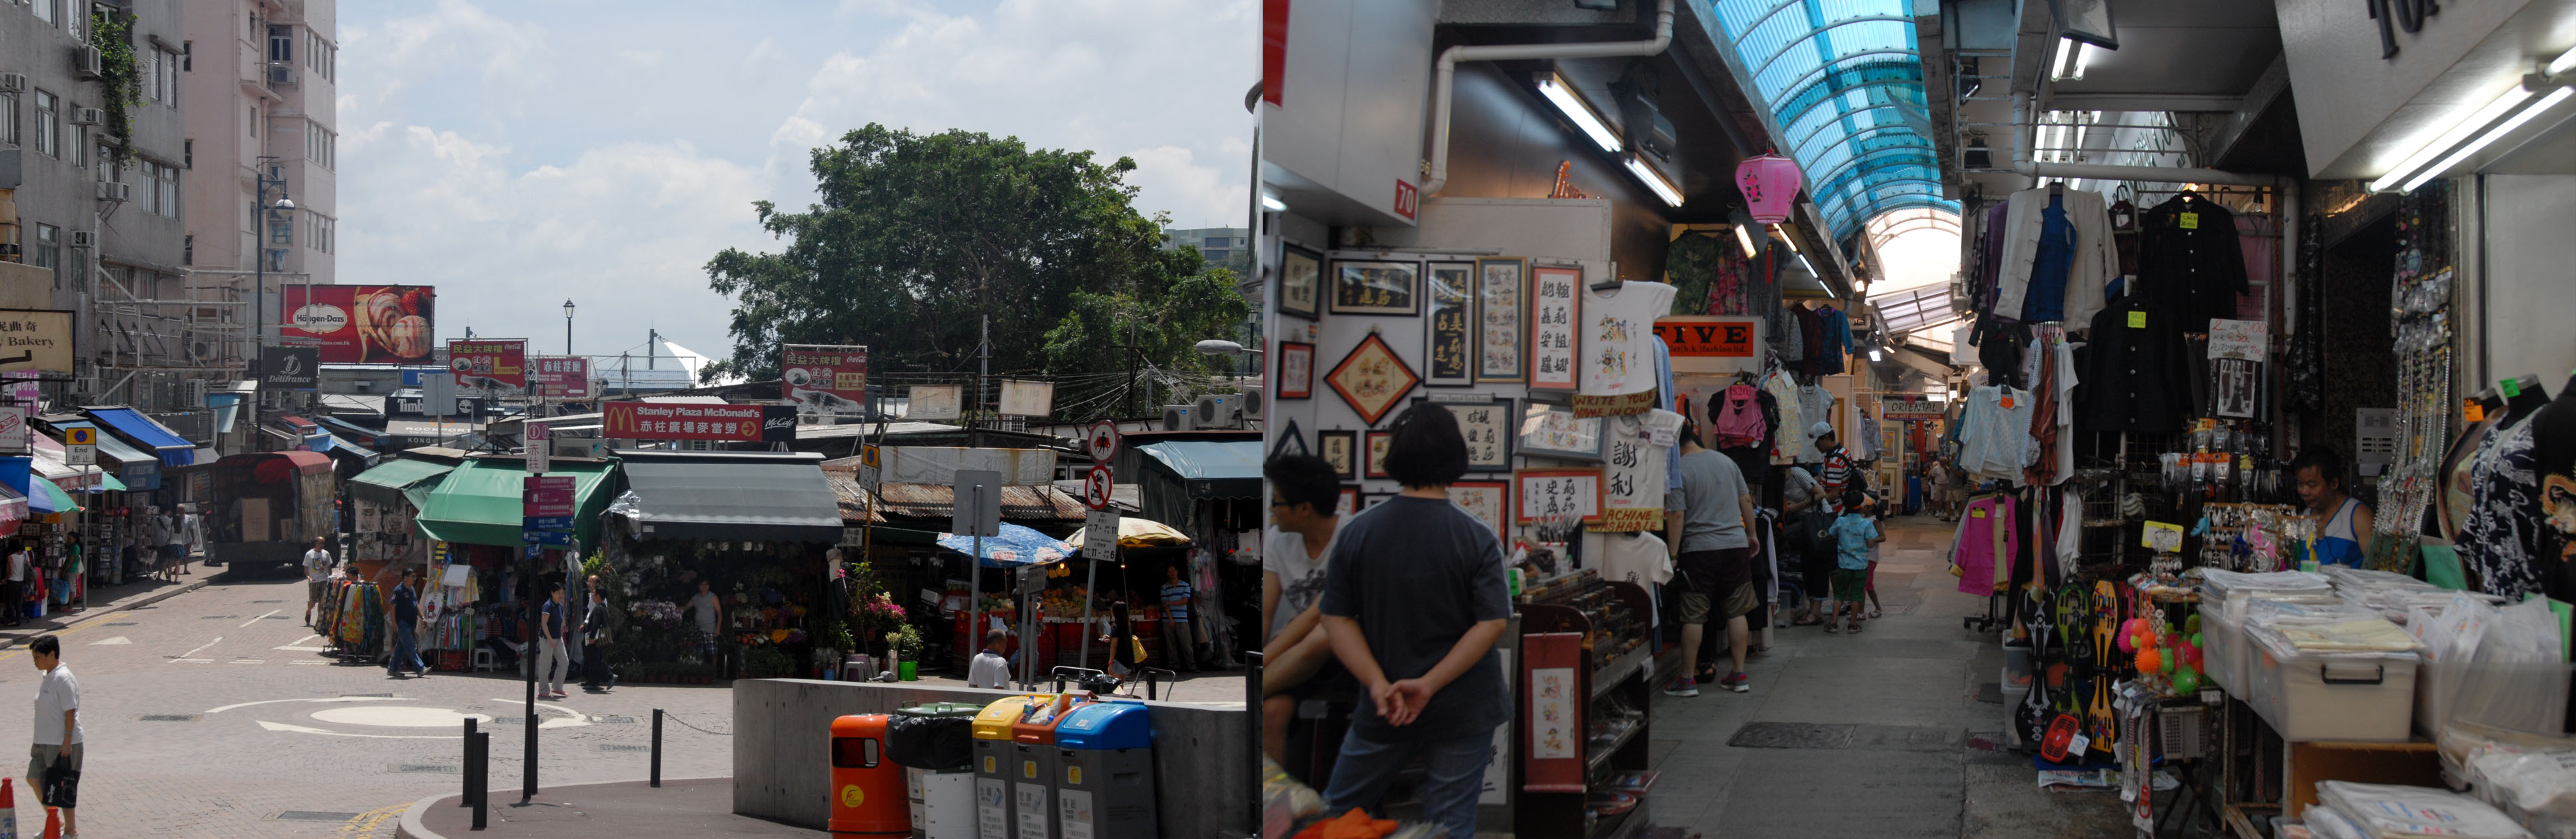 how to get to stanley market from causeway bay